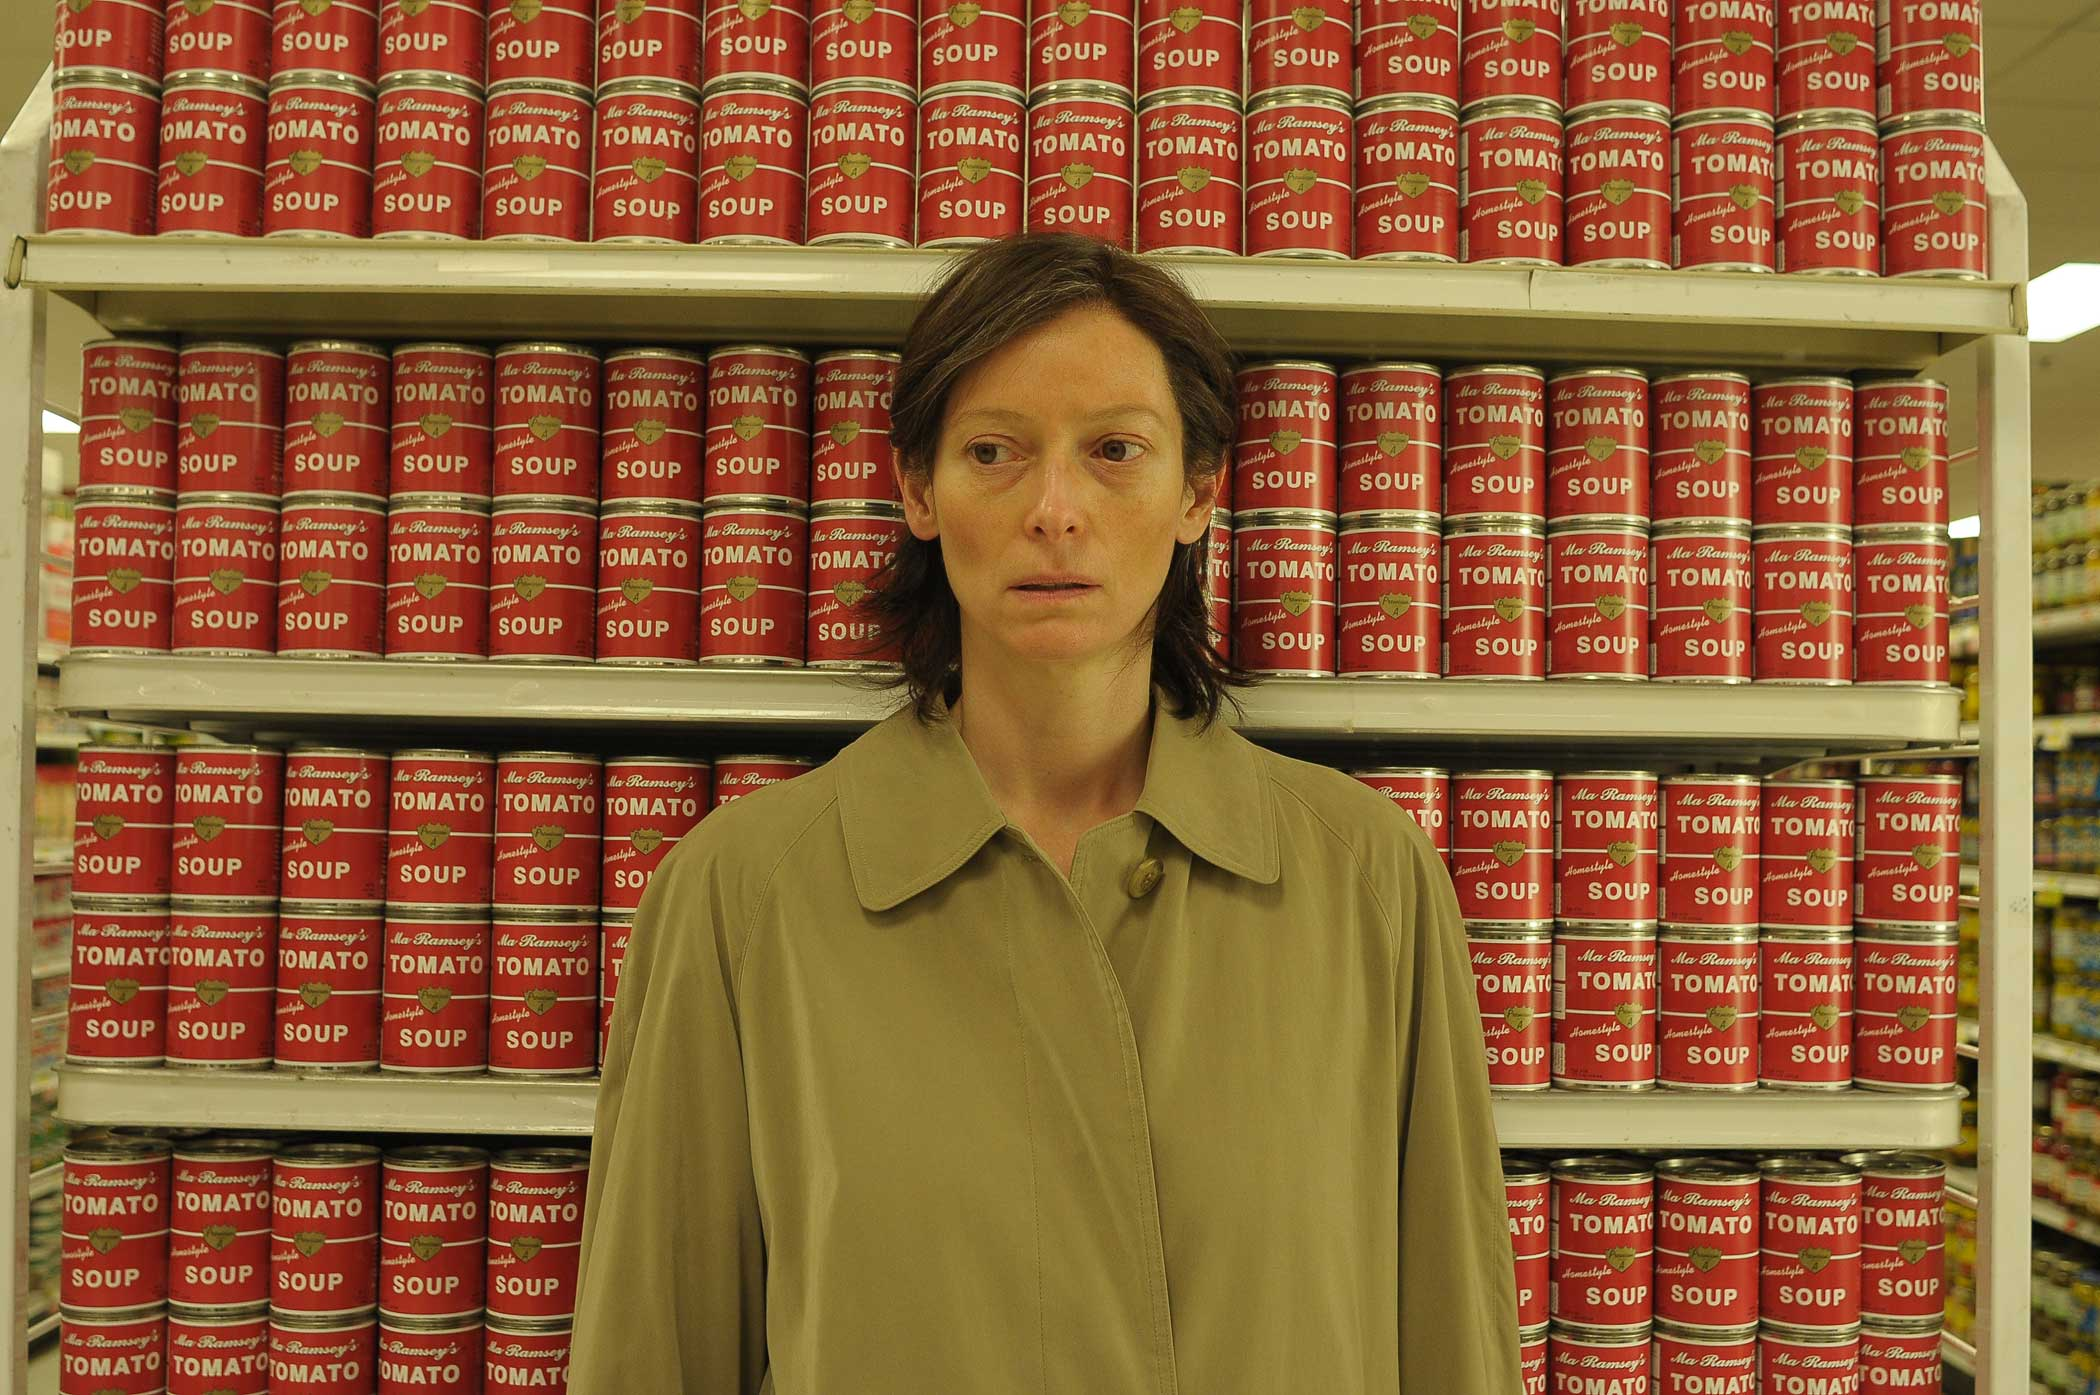 Tilda Swinton as Eva Khatchadourian in We Need to Talk About Kevin in 2011.